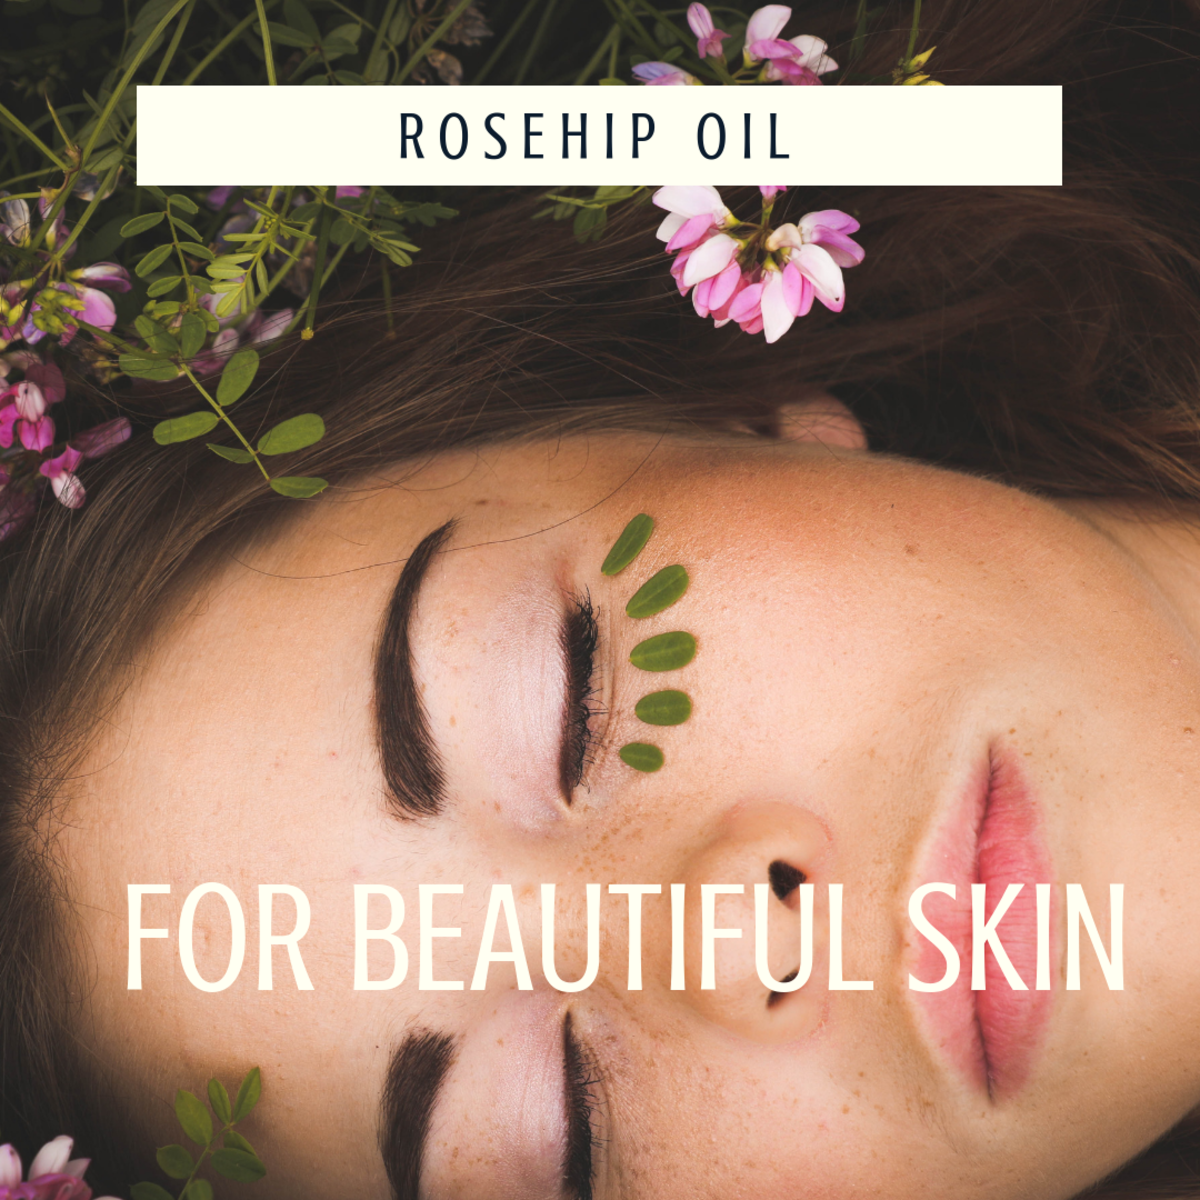 Rosehip oil has been touted as a miracle moisturizer. Find out why.